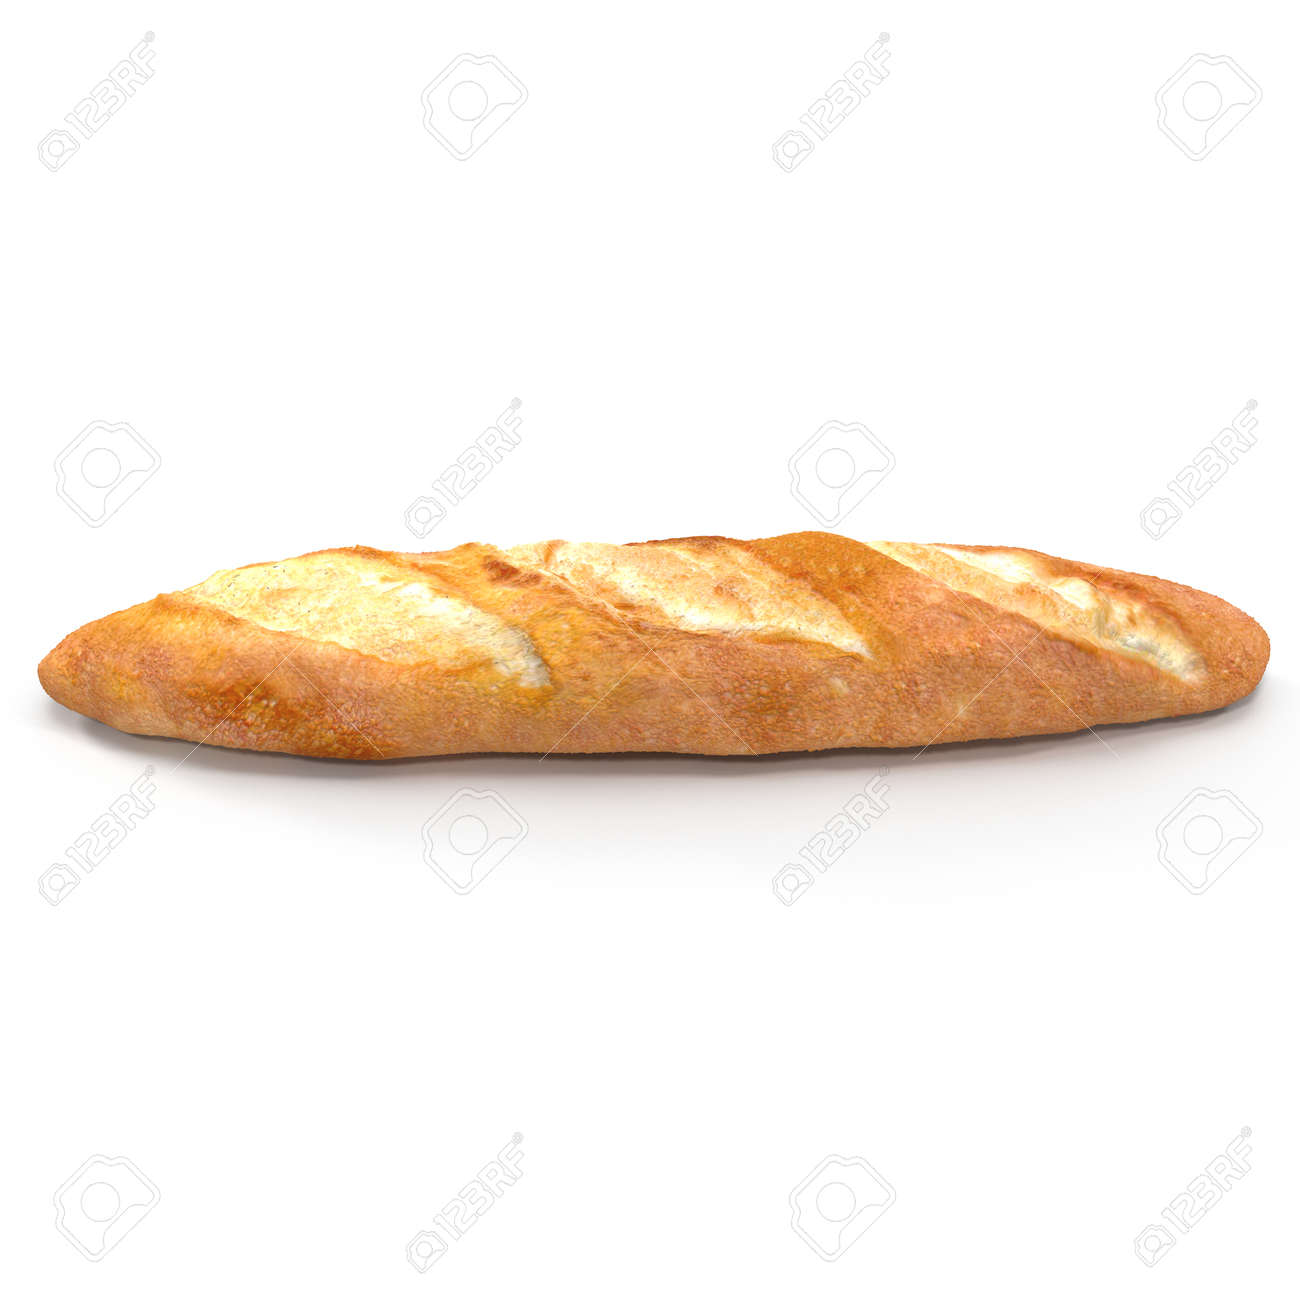 French Baguette Bread Isolated On A White Background Bakery Side View 3D Illustration Stock